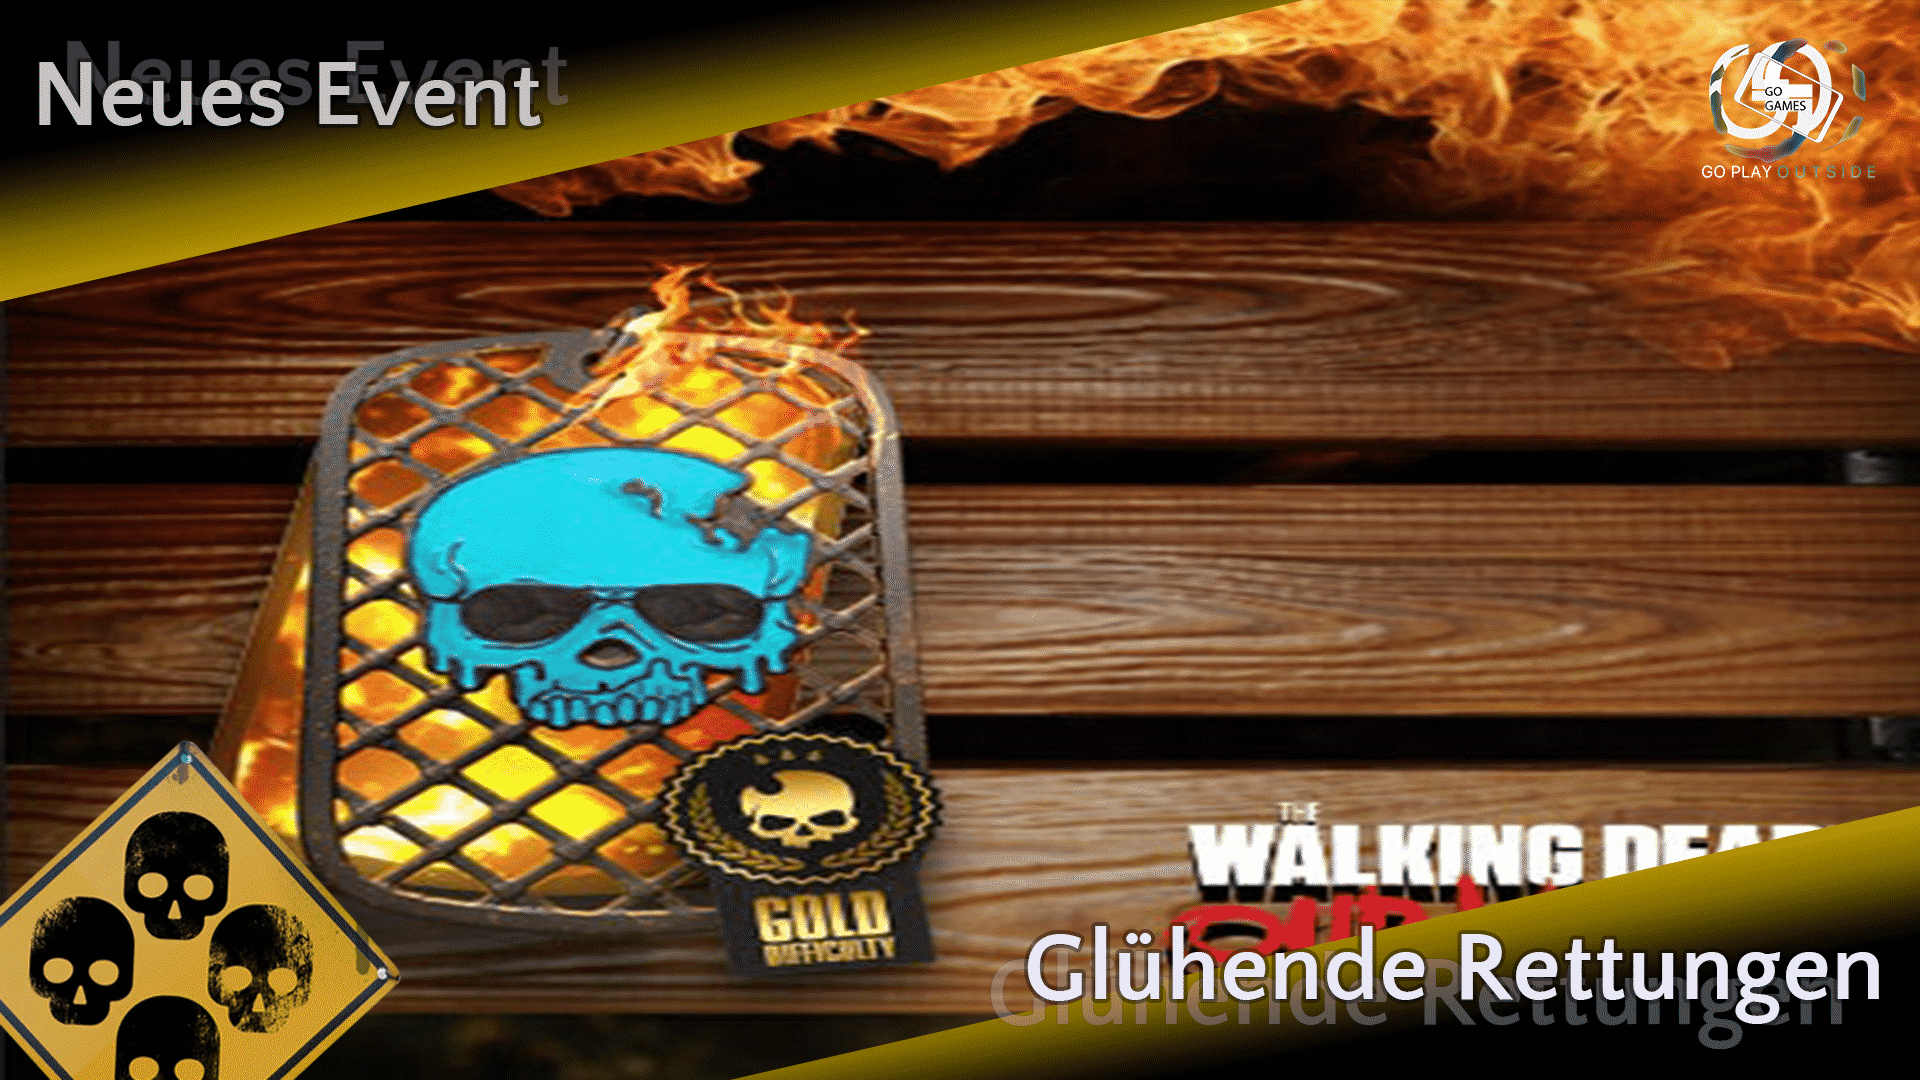 The Walking Dead: Our World - Event - Glühende Rettungen